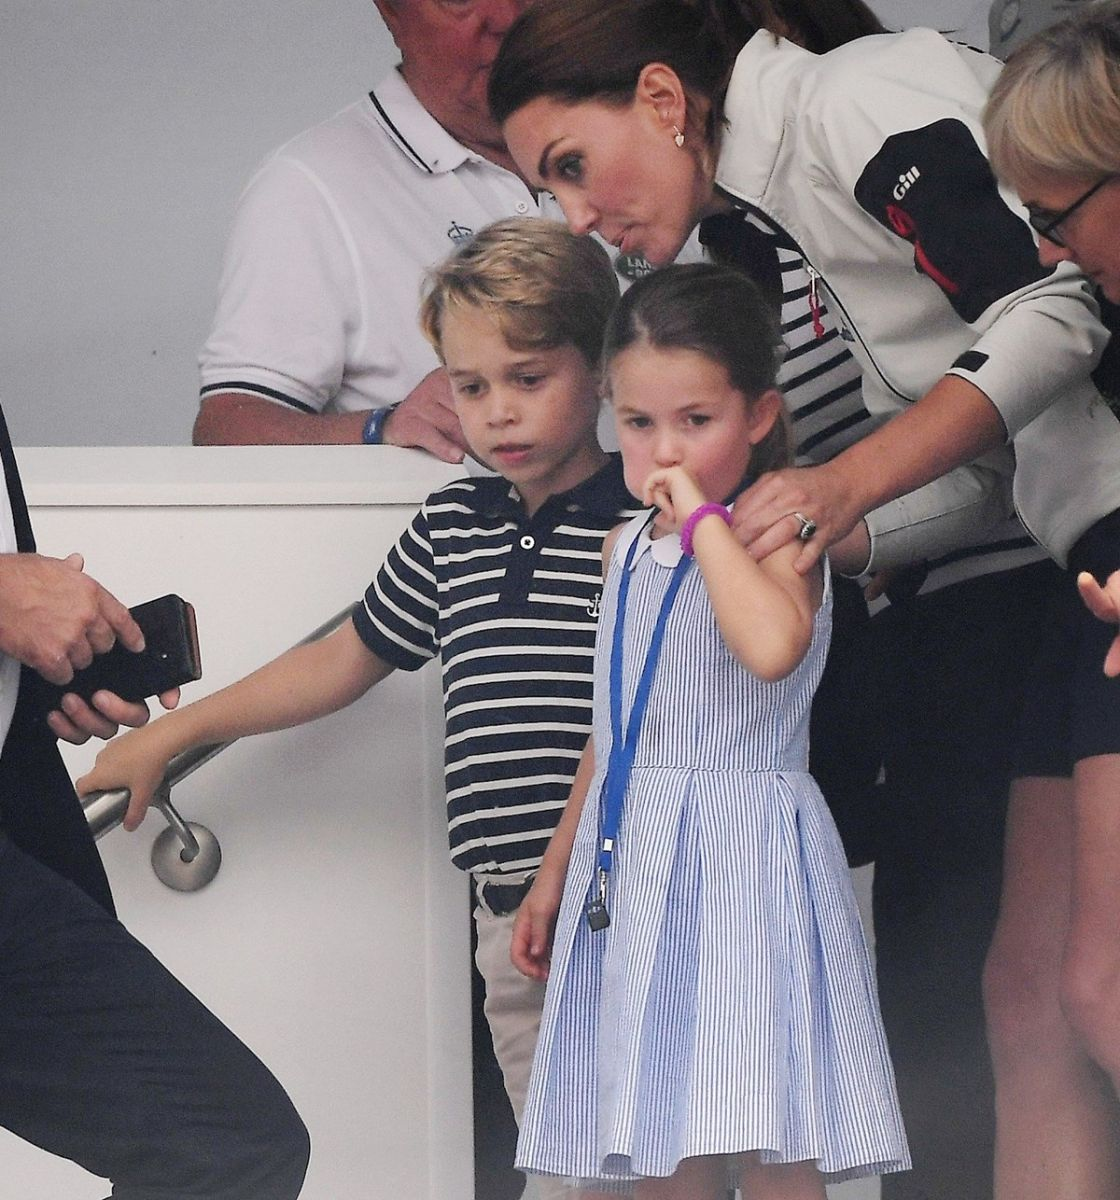 Princesa charlotte, princesa charlotte enseña la lengua, kate middleton, princess charlote, principe george, principe william, duques de cambridge, duquesa de cambridge, regata copa del rey, evento copa del rey inglaterra